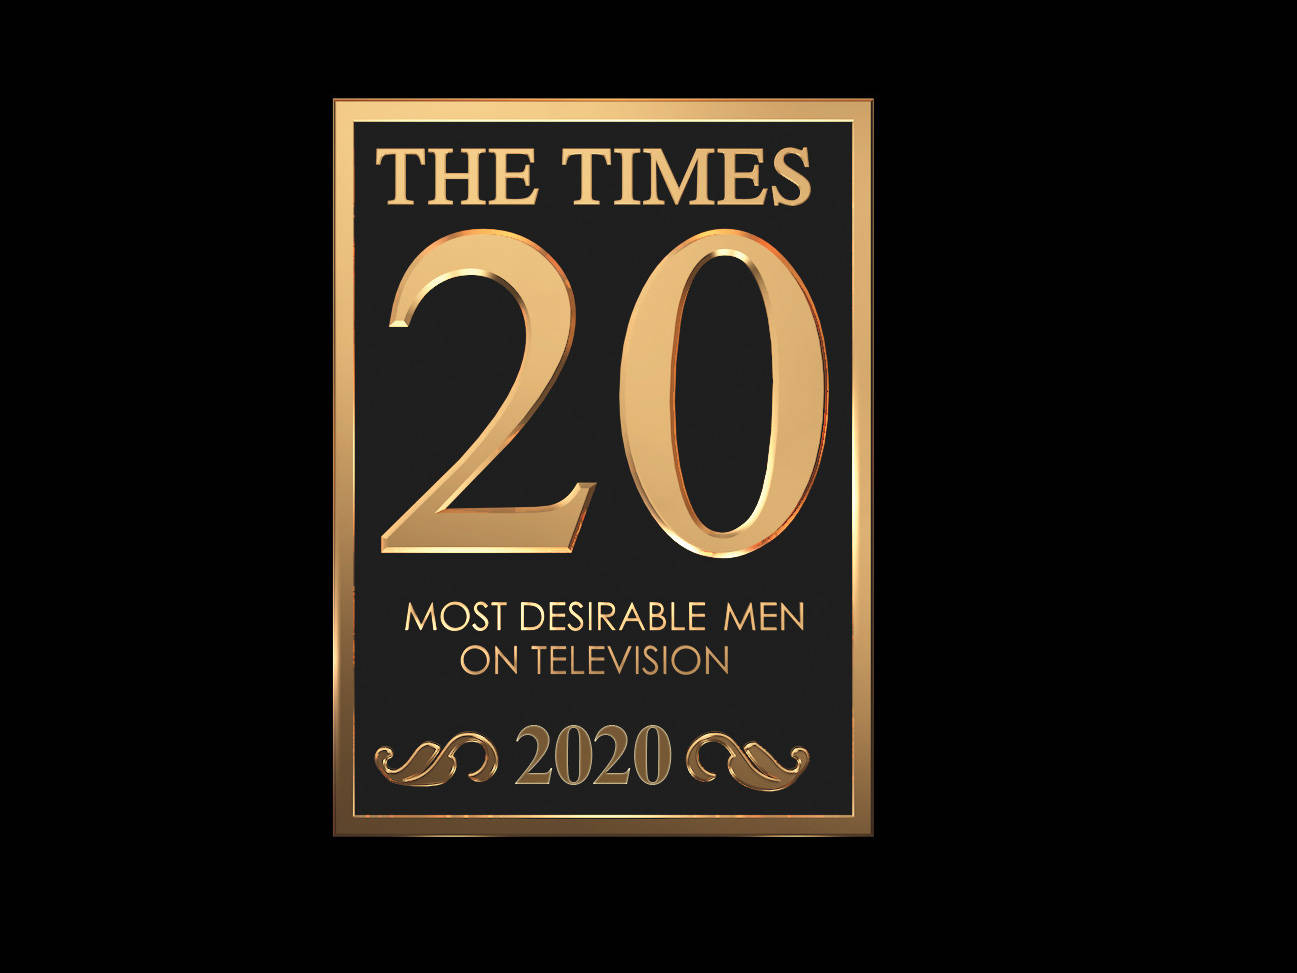 The Times 20 Most Desirable Men on TV 2020